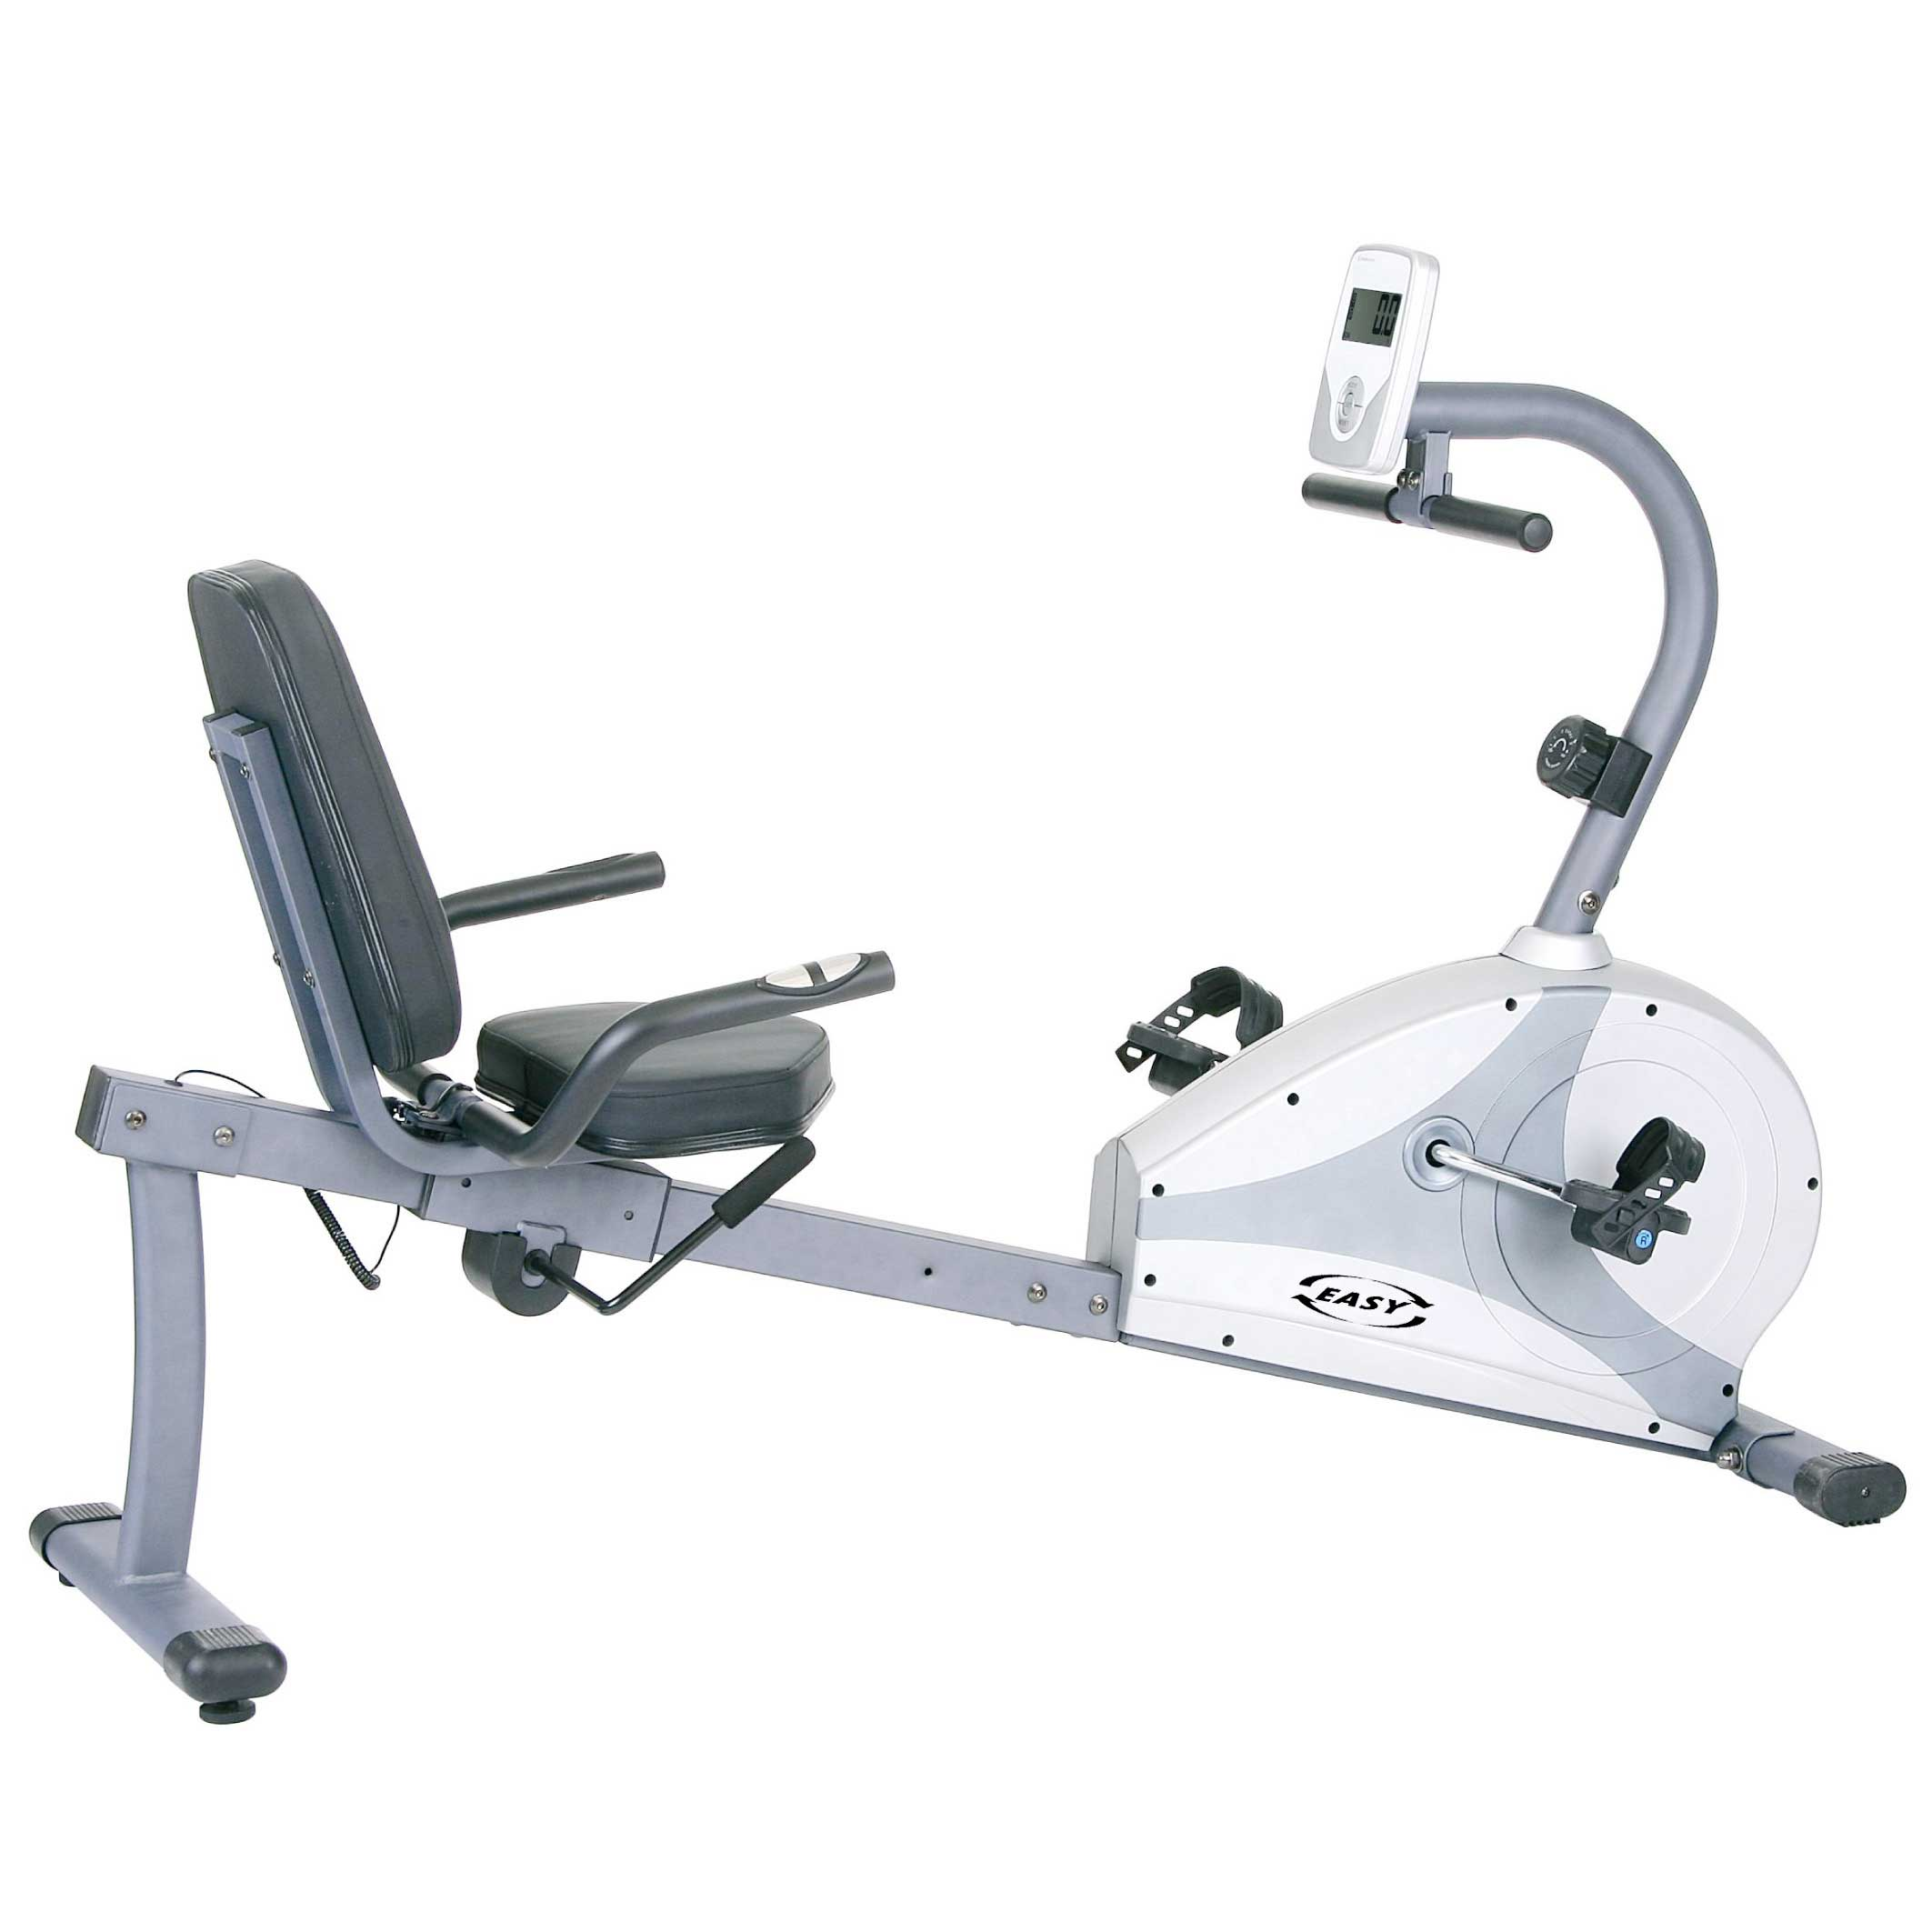 Yukon EZ Recumbent Bike 3.1